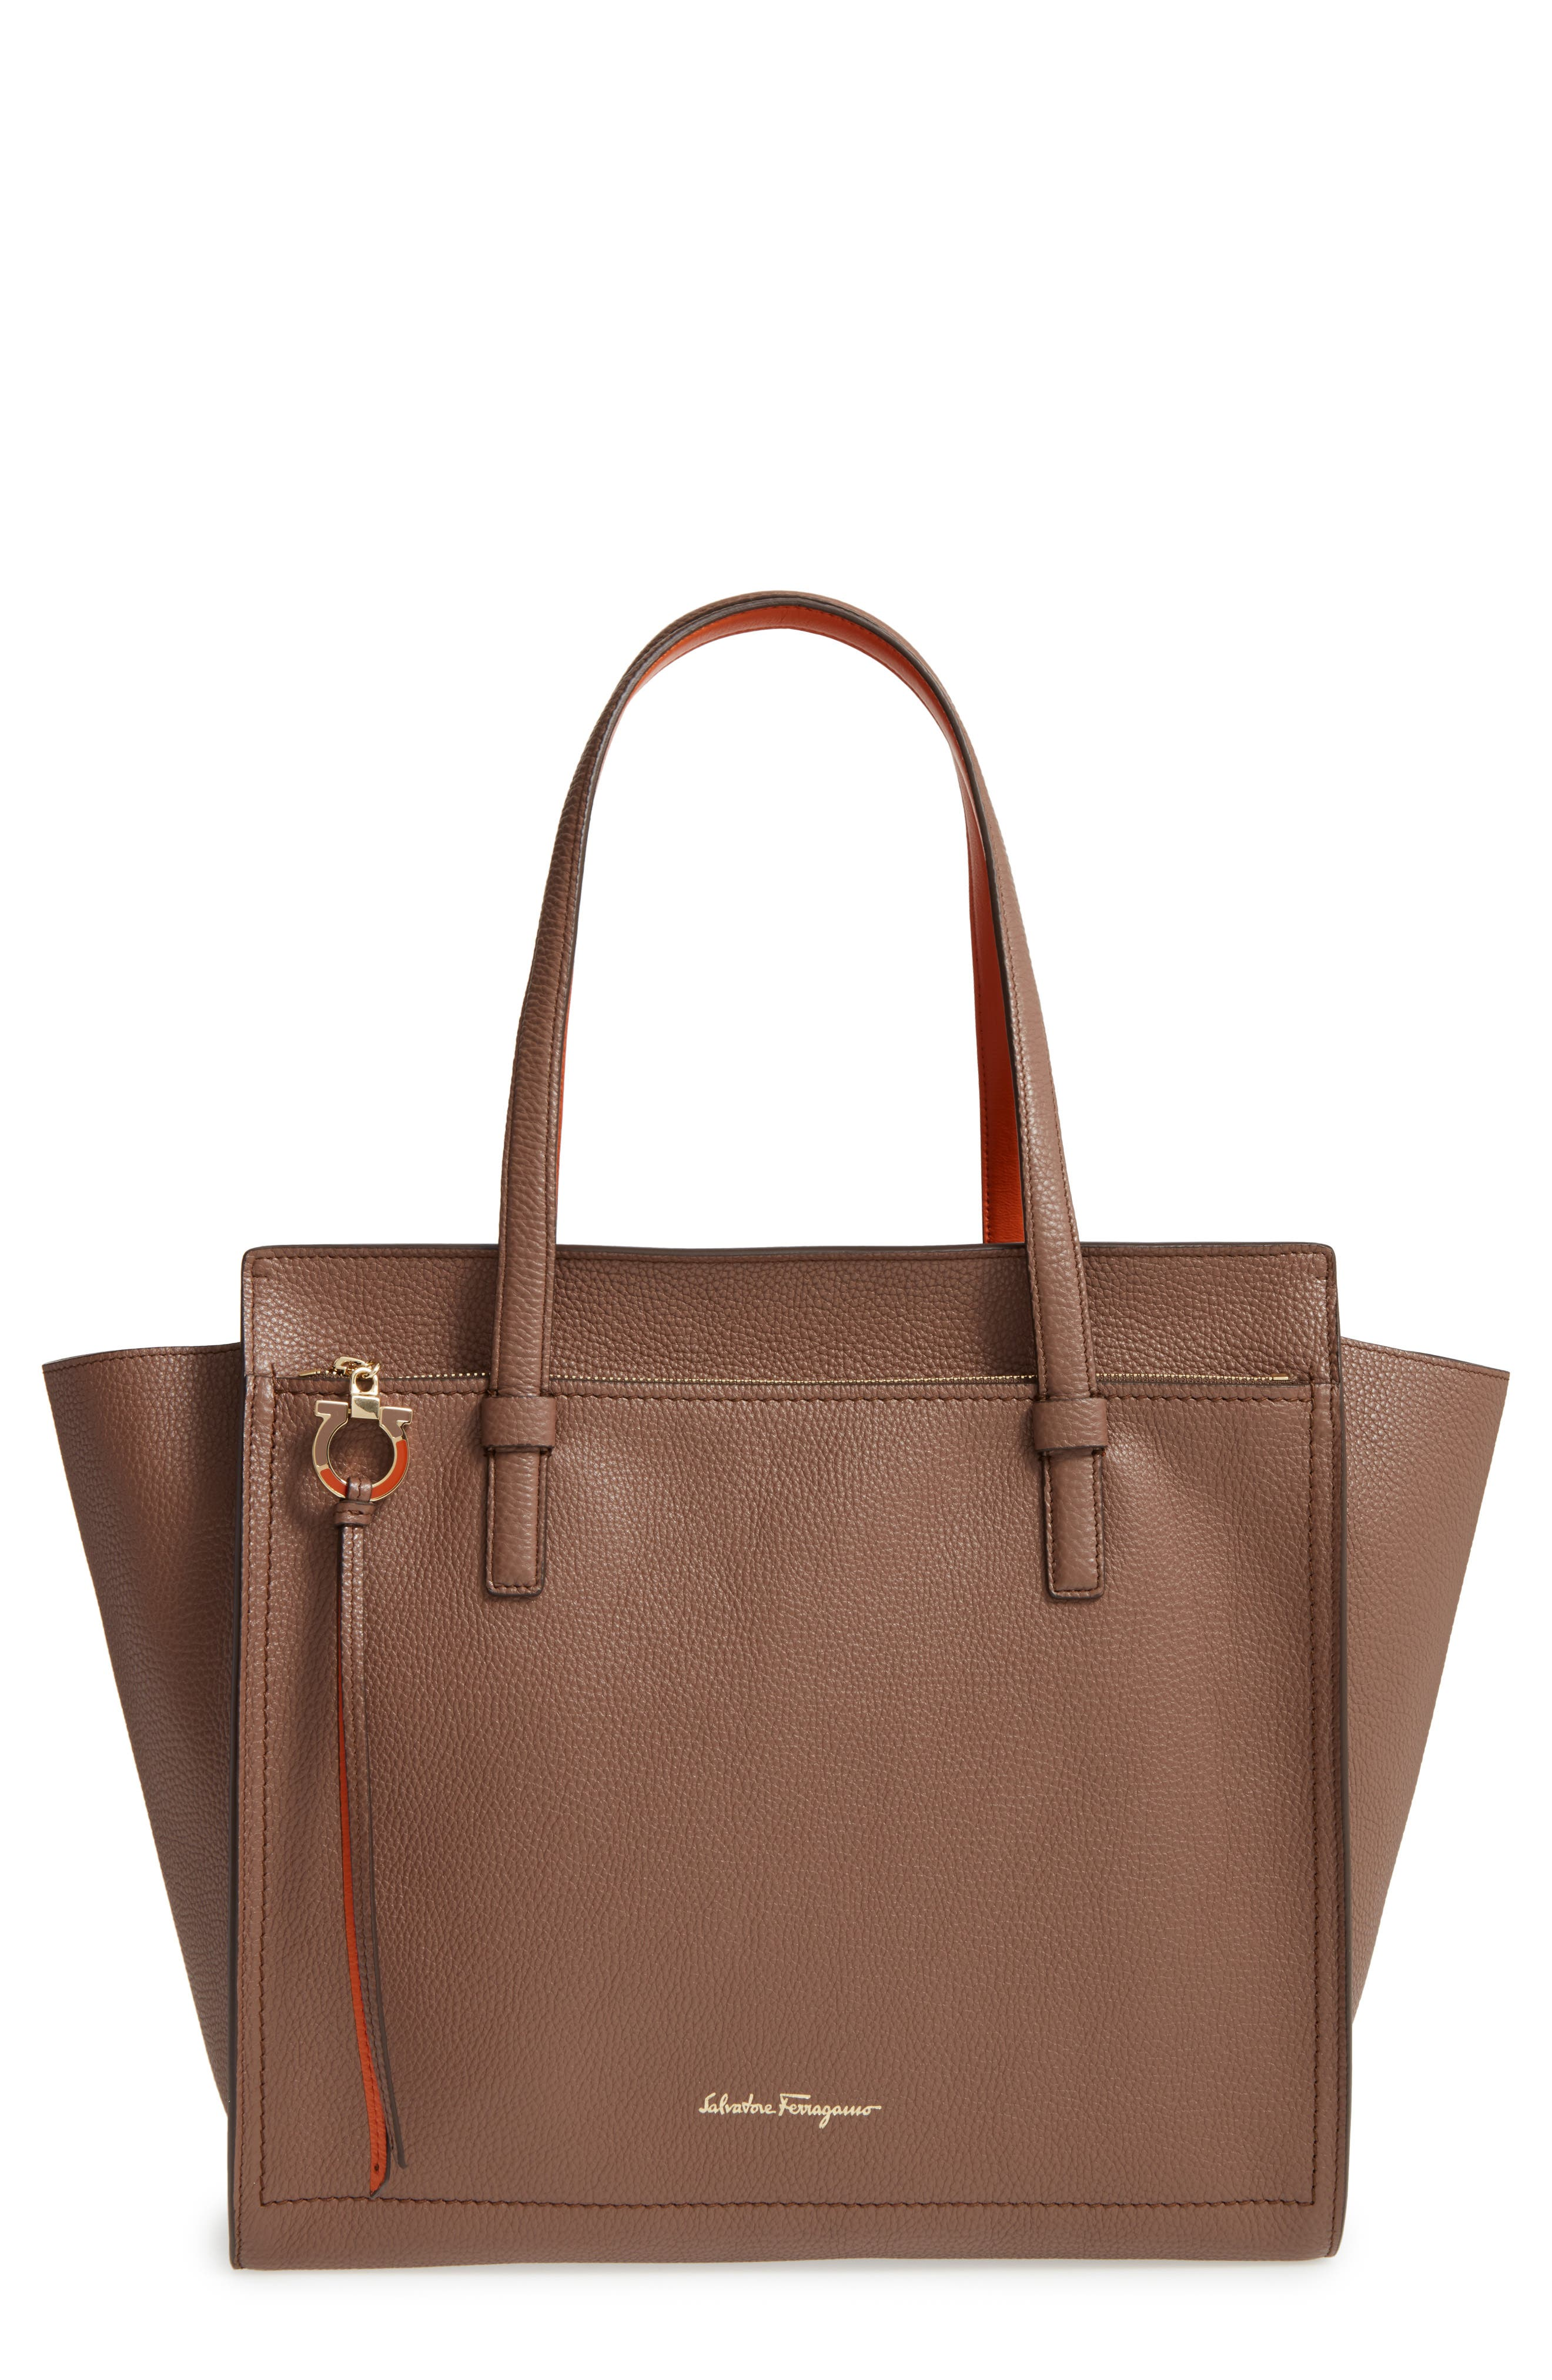 Alternate Image 1 Selected - Salvatore Ferragamo Large Amy Leather Tote